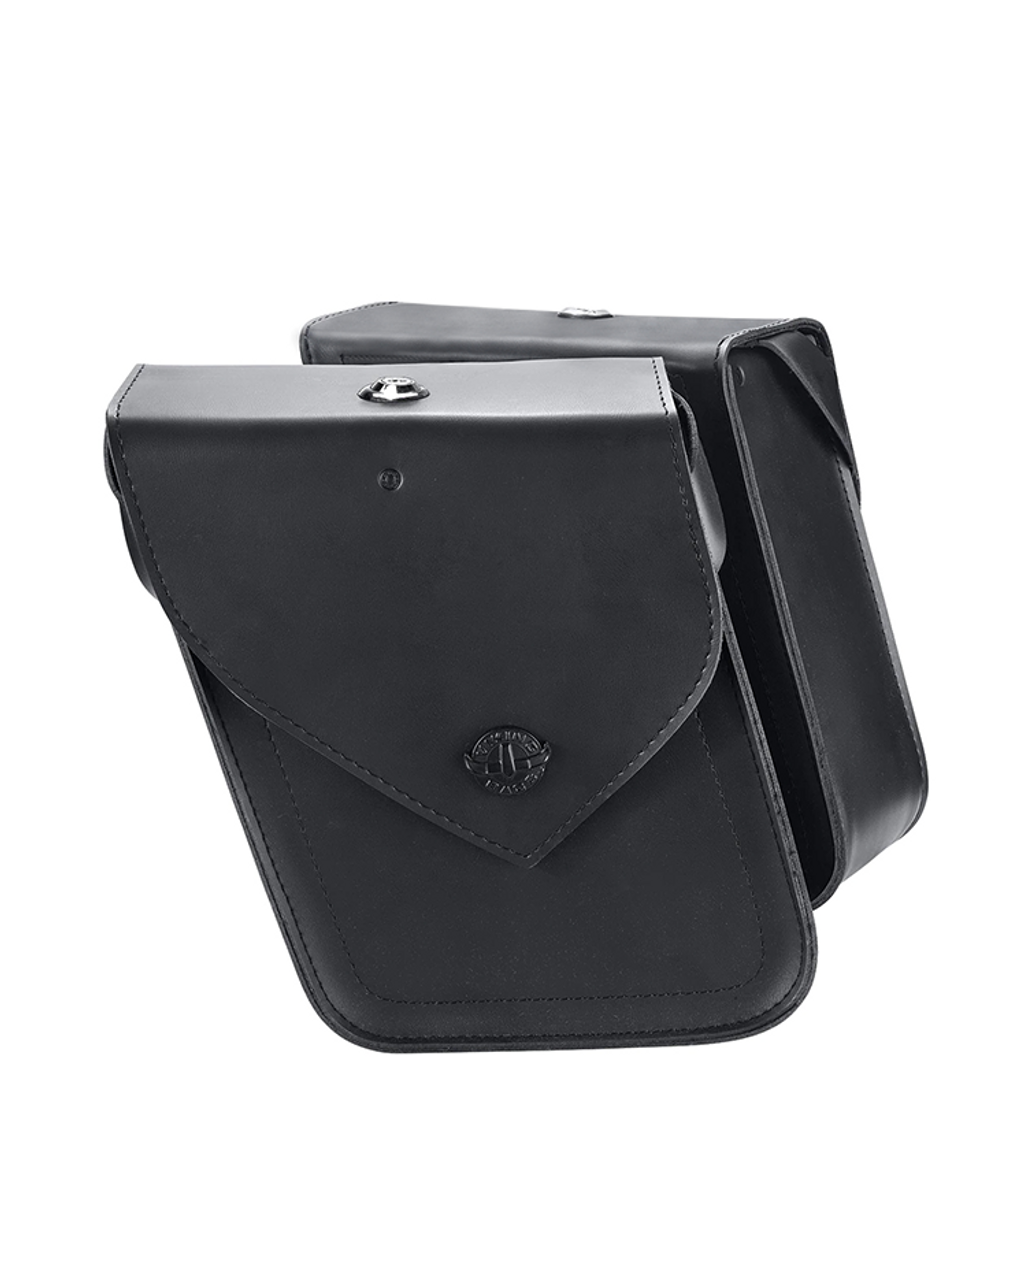 Viking Dark Age Compact Plain Leather Motorcycle Saddlebags For Sportster Seventy Two 72 Both bag view